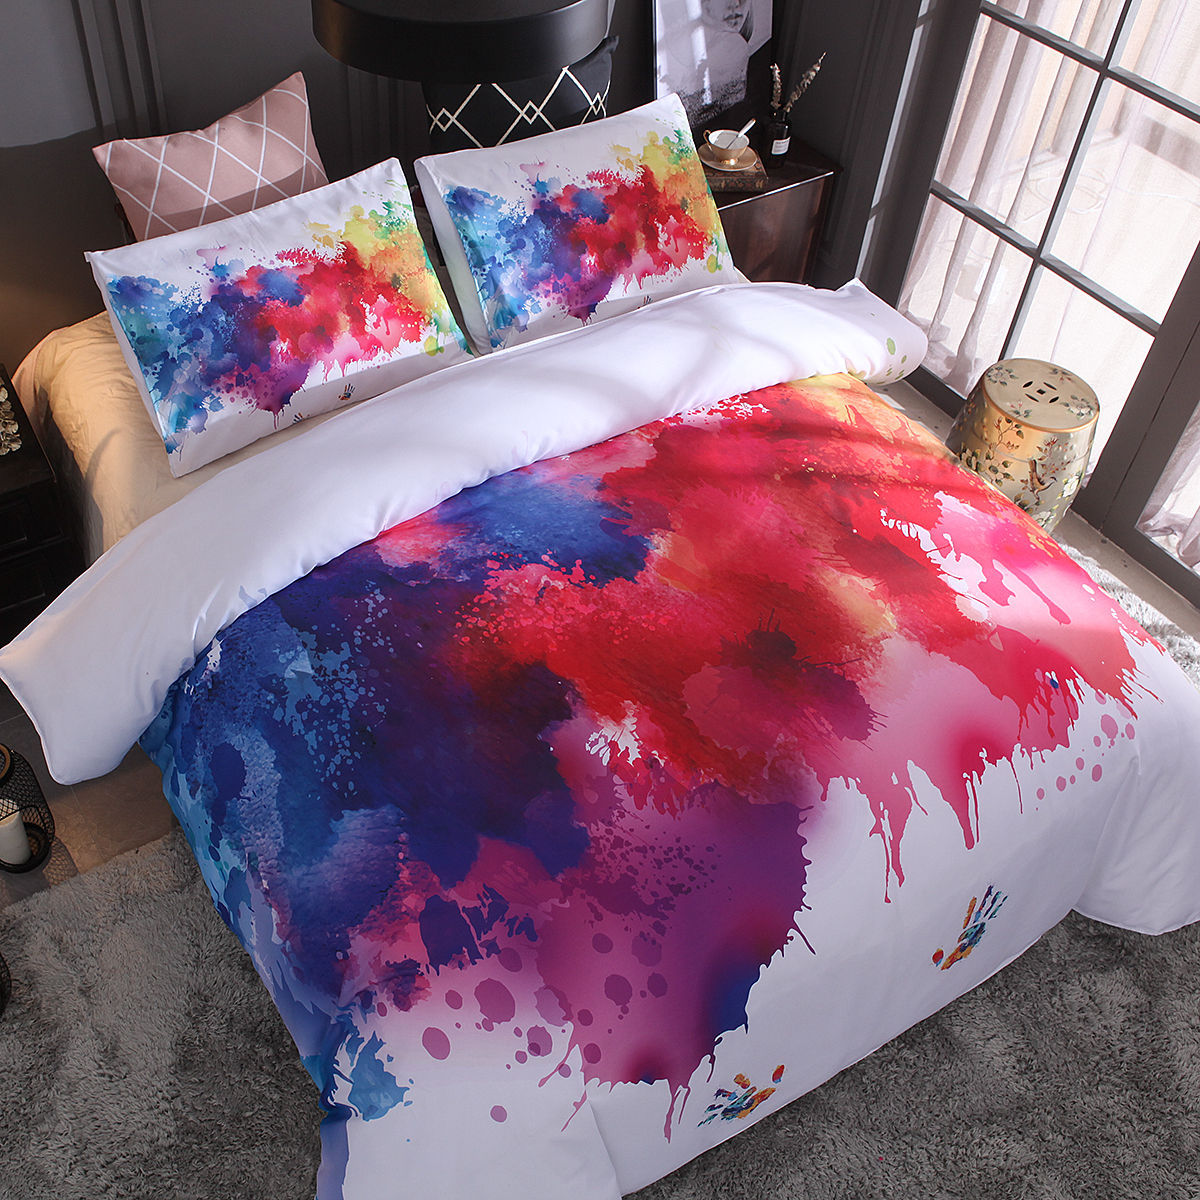 JaneYU Special For Splash Ink, Painted Stars, Digital Printing, Fast Selling Bedding, Two Or threePiece SetJaneYU Special For Splash Ink, Painted Stars, Digital Printing, Fast Selling Bedding, Two Or threePiece Set